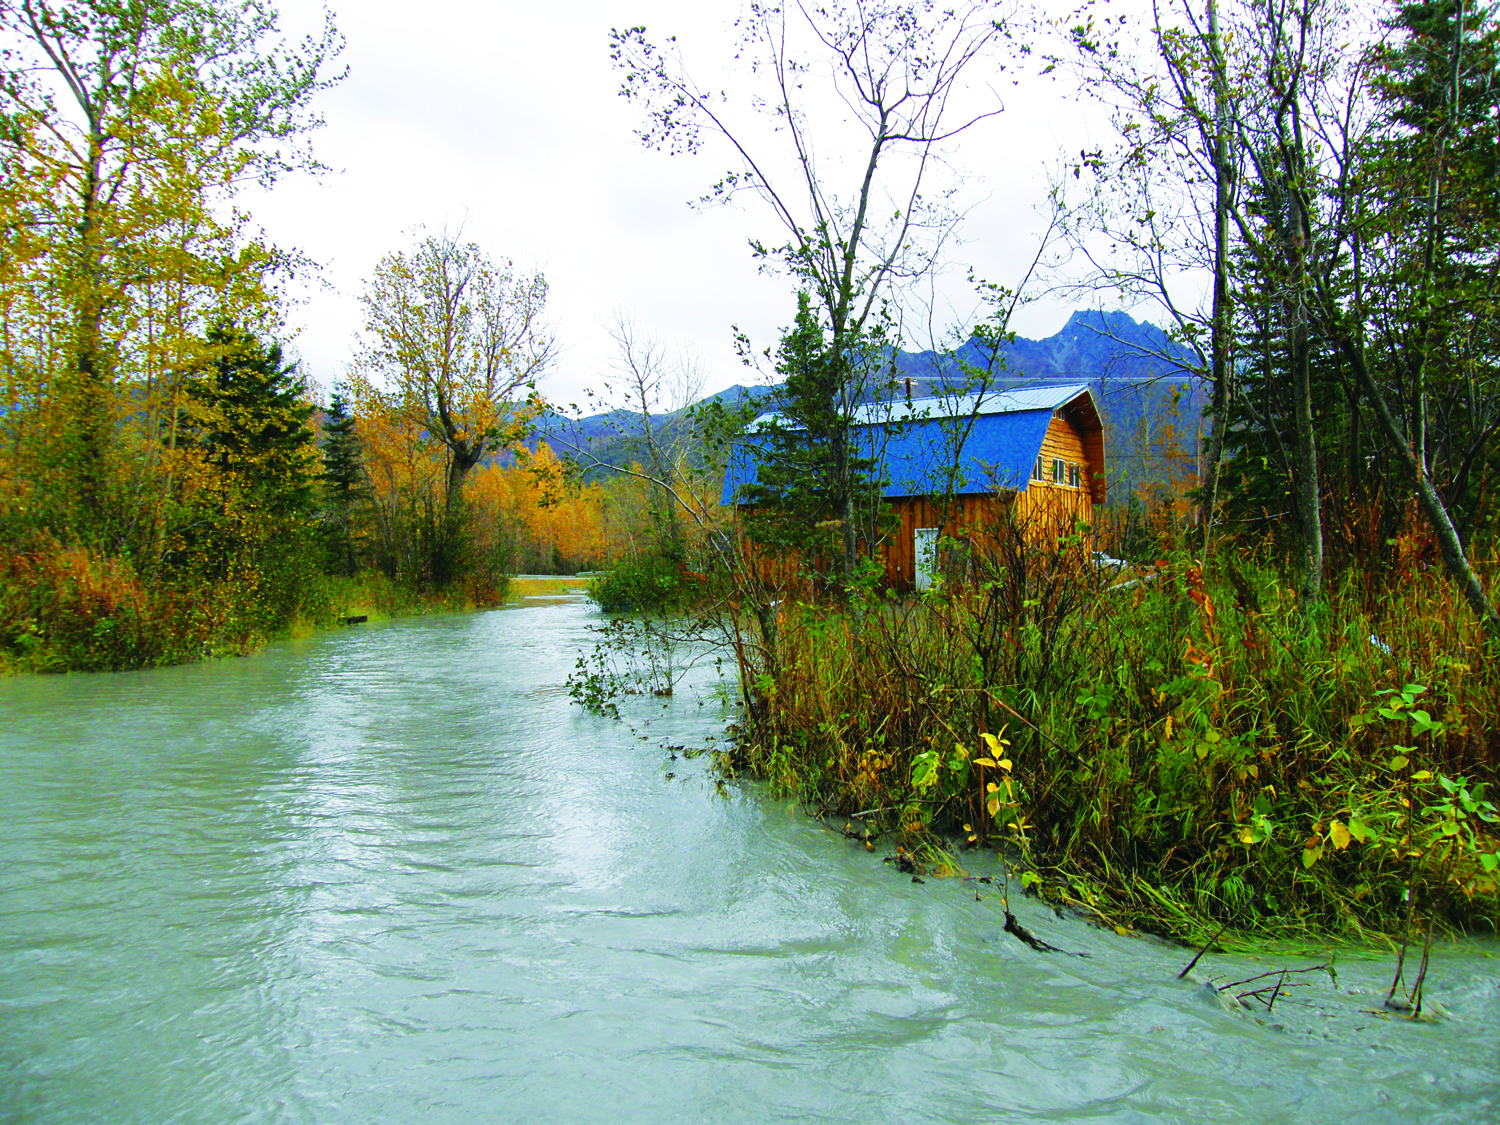 A home was flooded by the rising Matanuska River. Photo by J. Wake